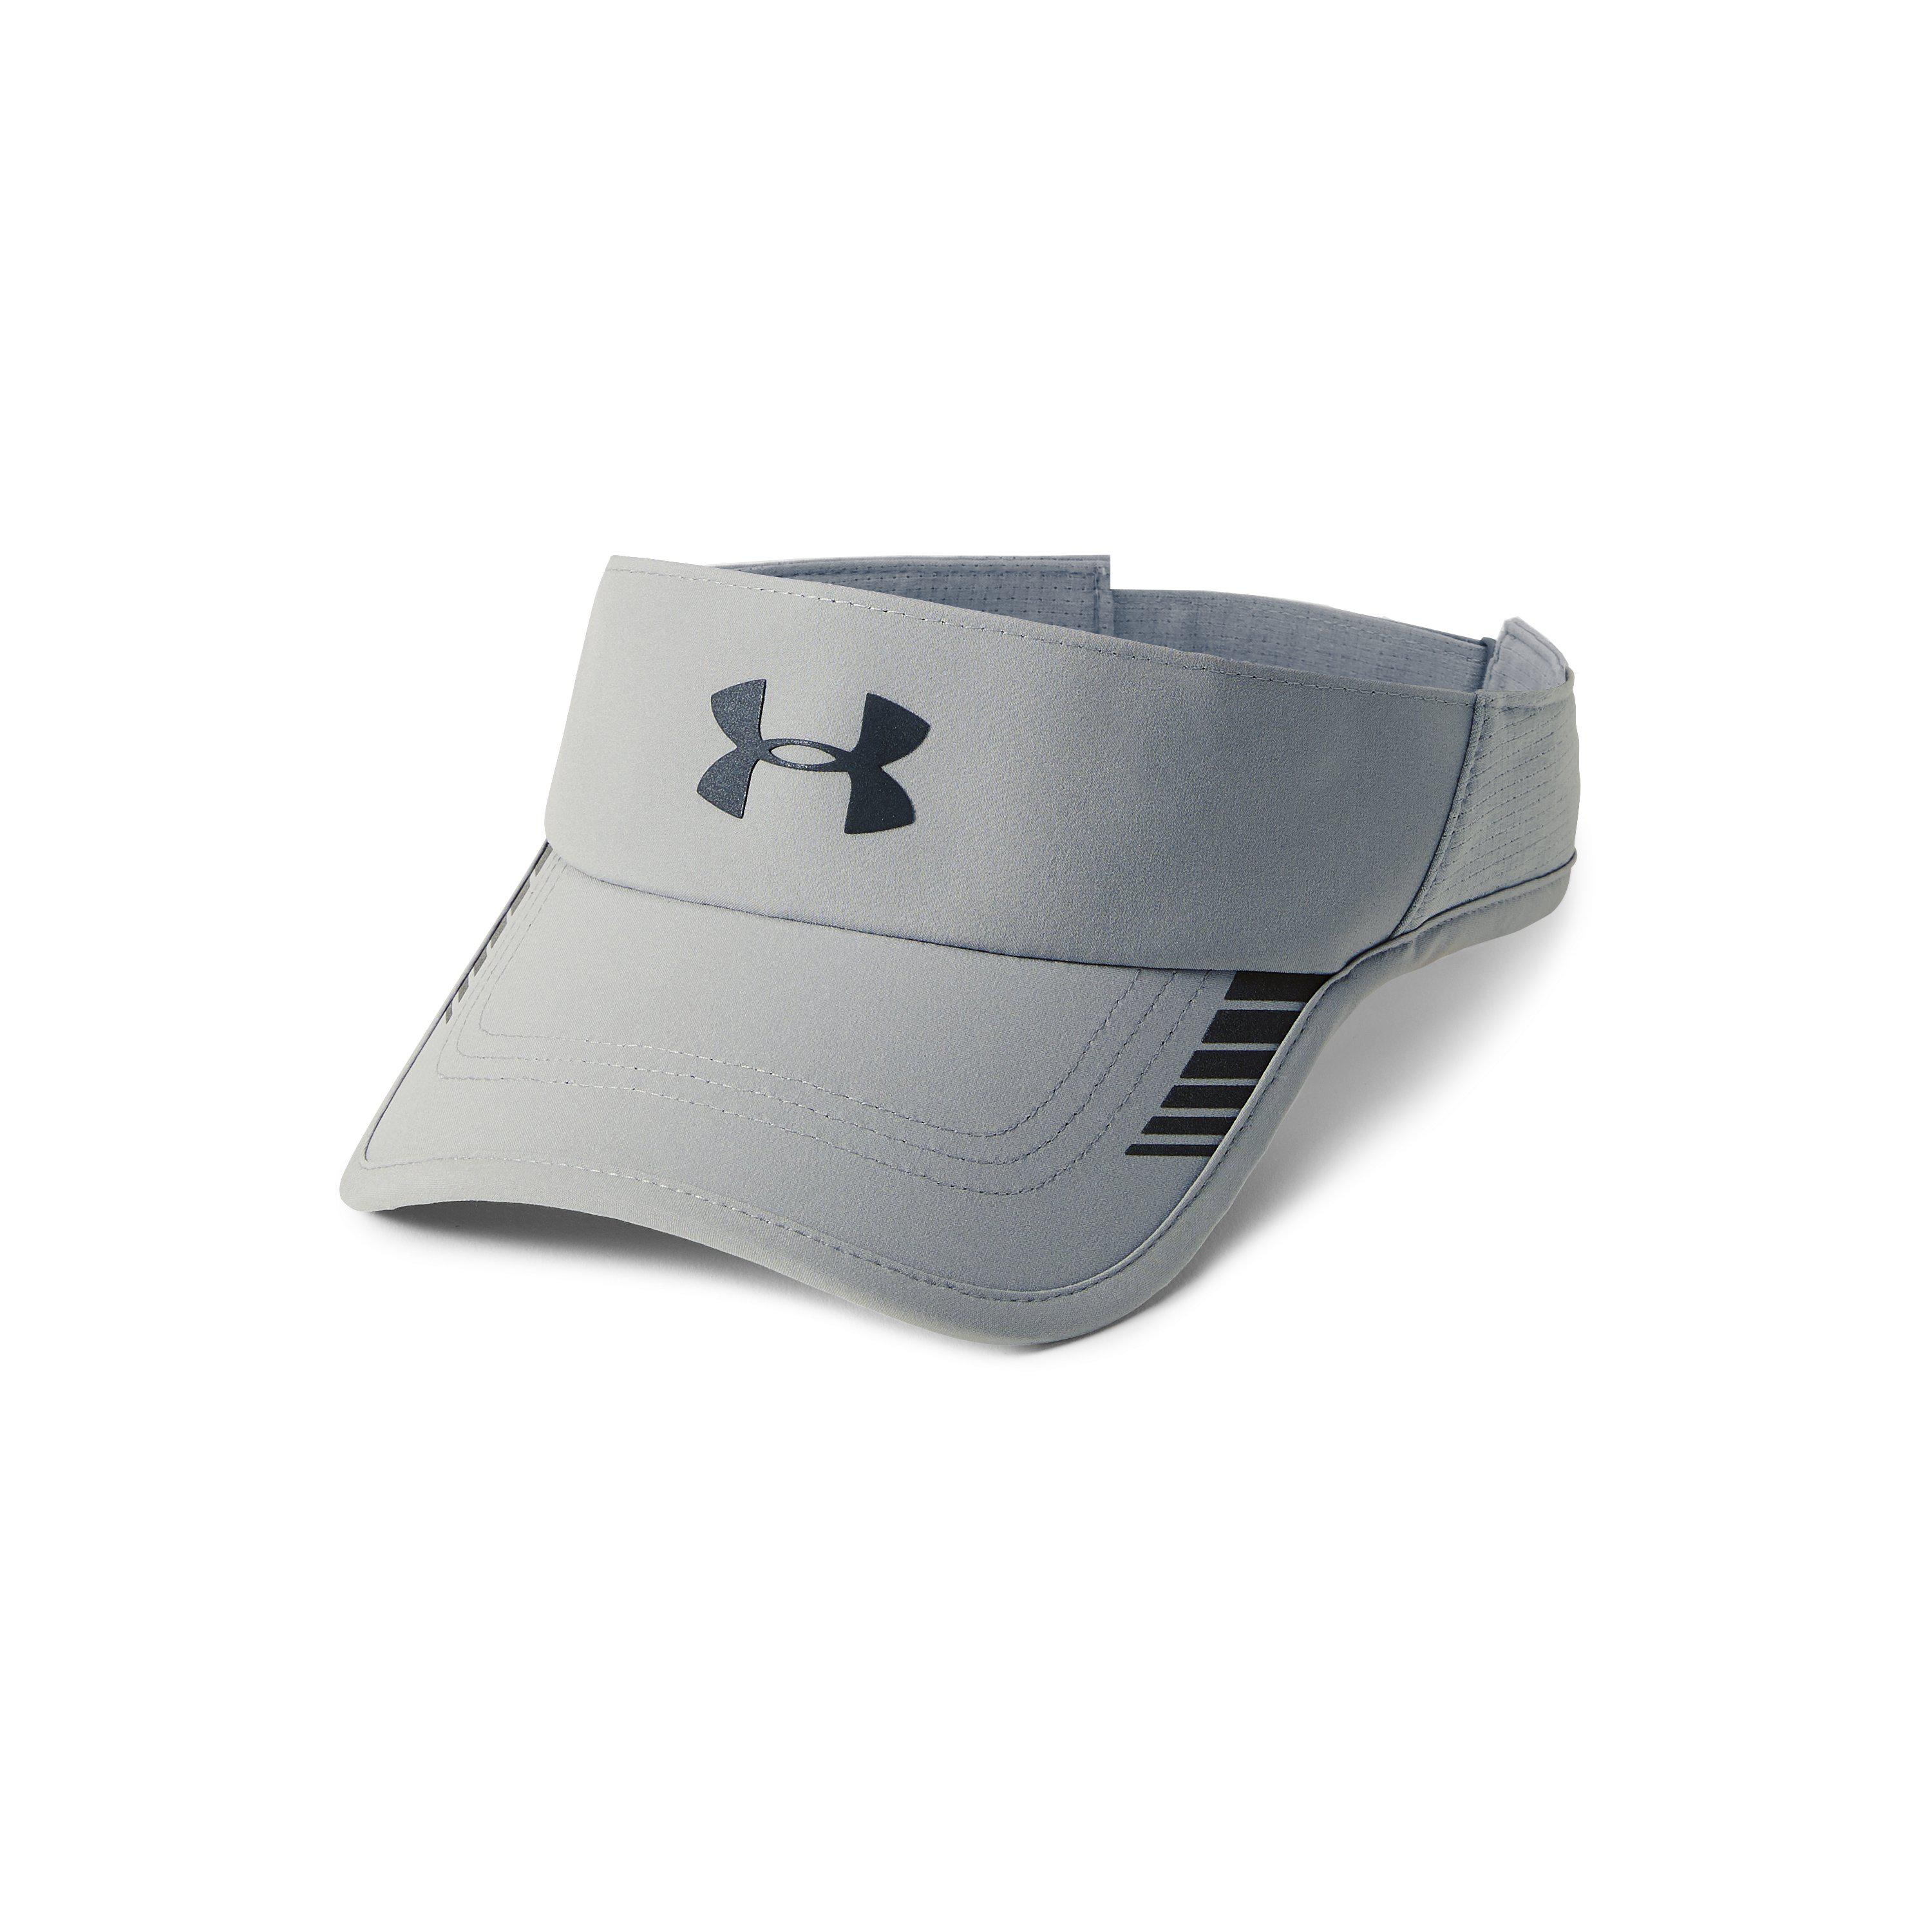 8690661ab74 Lyst - Under Armour Men s Ua Launch Armourventtm Visor for Men